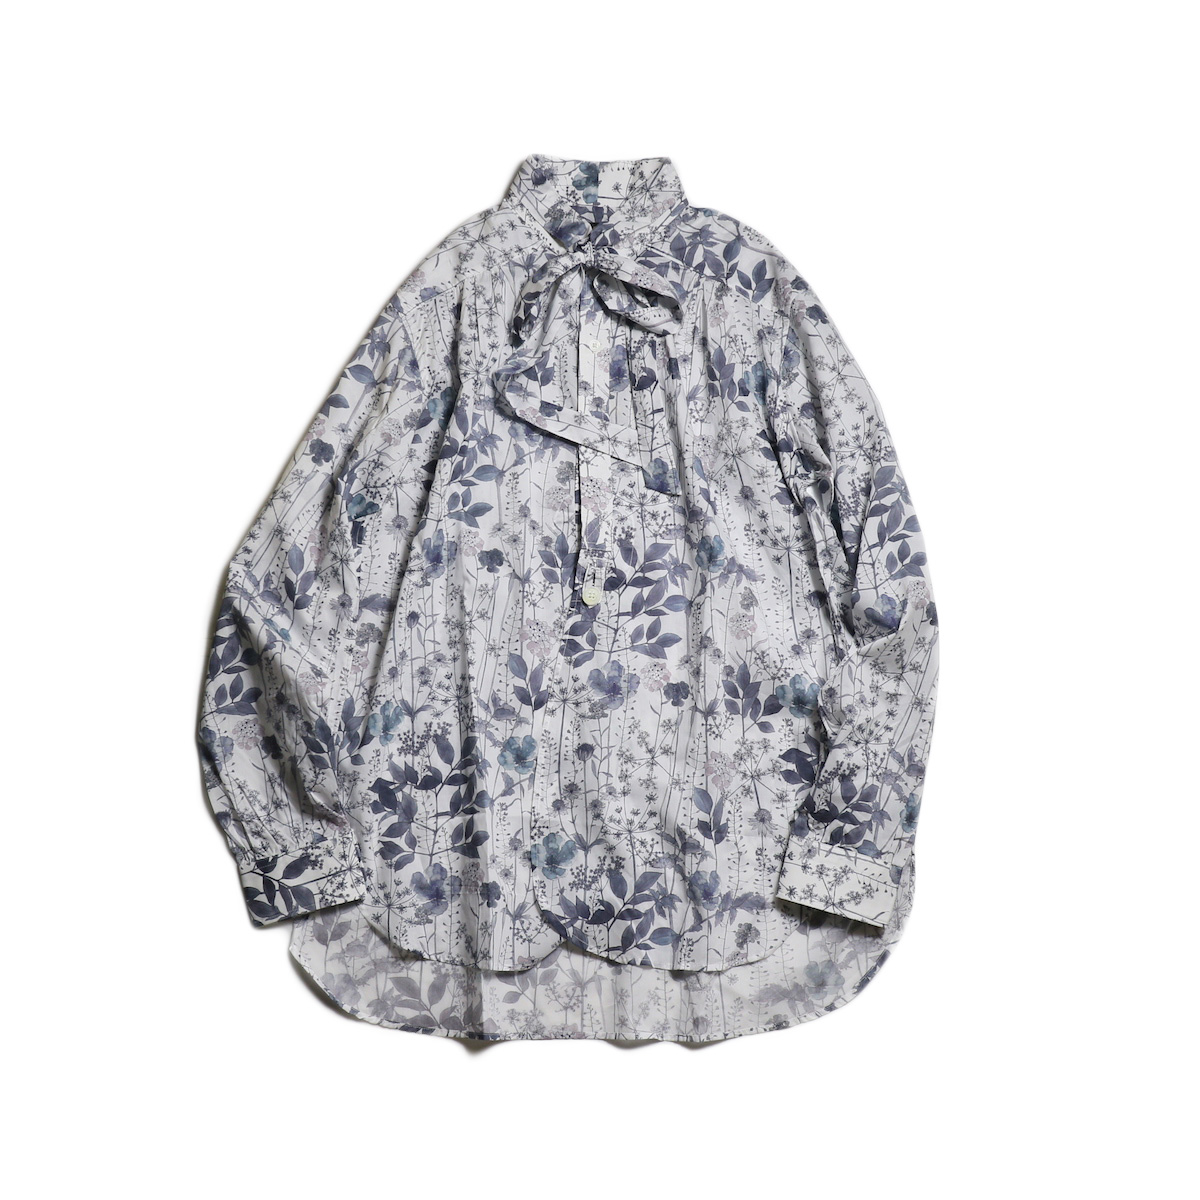 Needles / Ascot Collar EDW Gather Shirt -Liberty Print (Gray Flower)